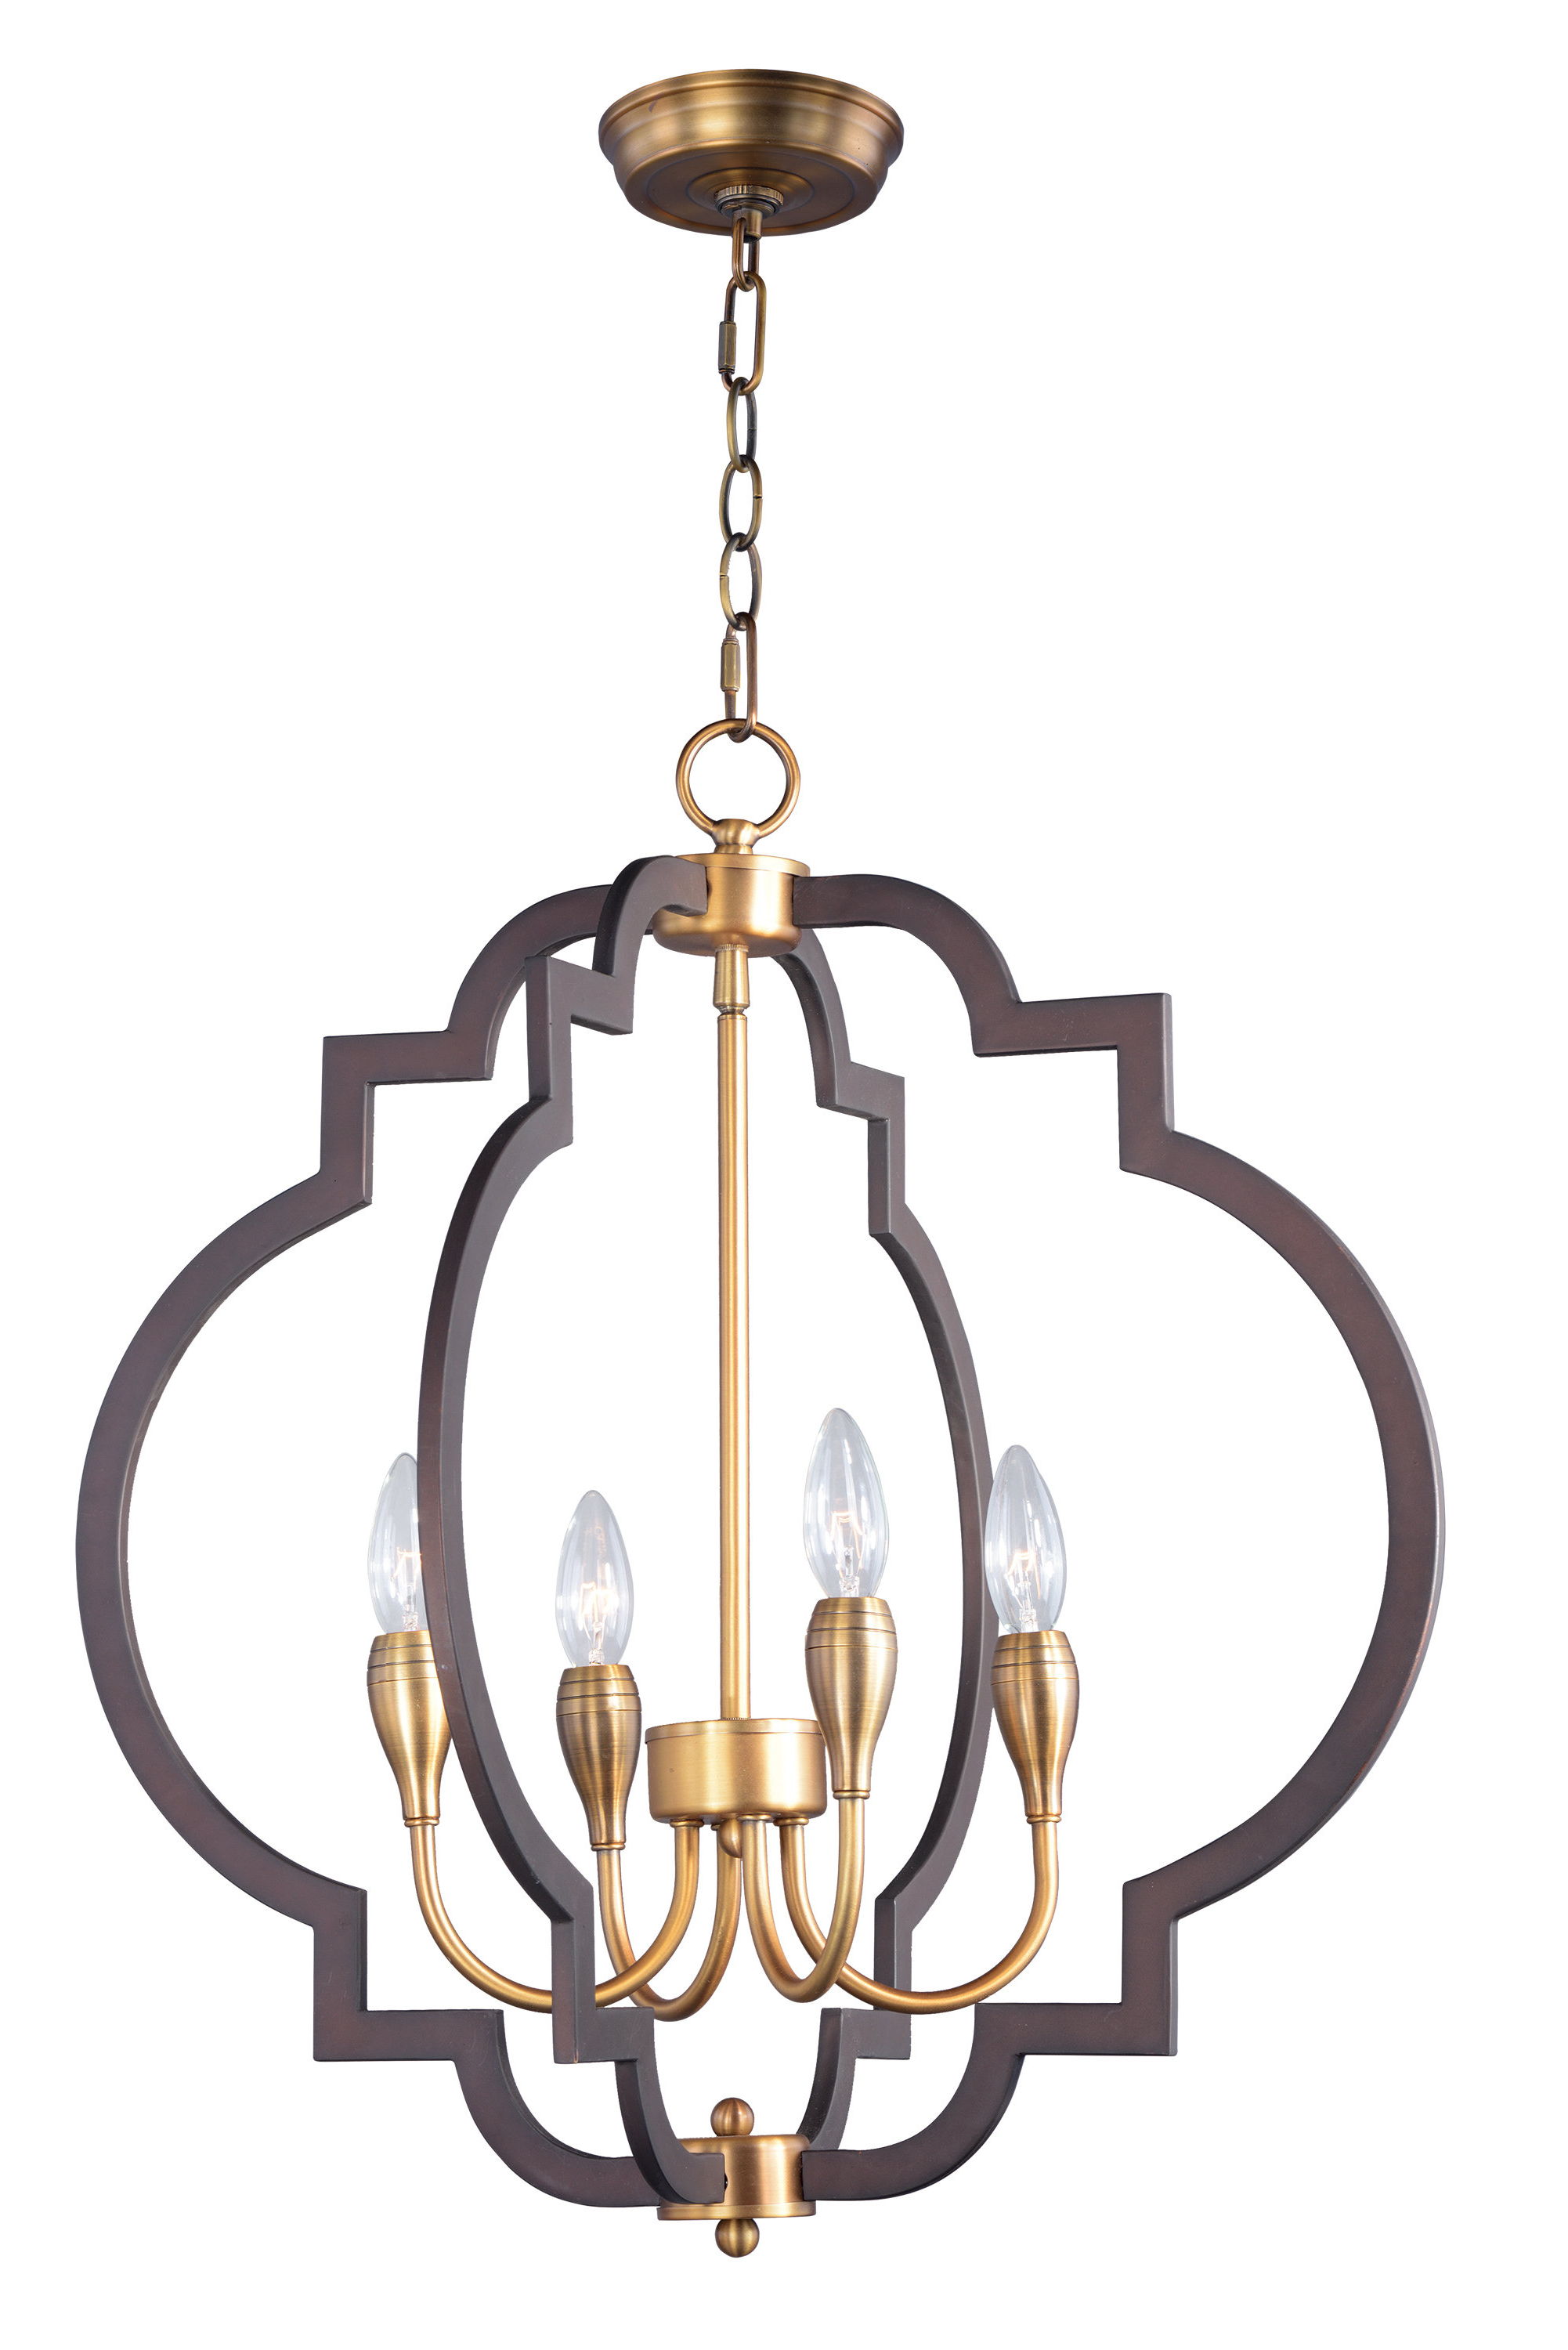 Reidar 4 Light Geometric Chandeliers With Newest Farmhouse & Rustic Geometric Chandeliers (View 12 of 25)